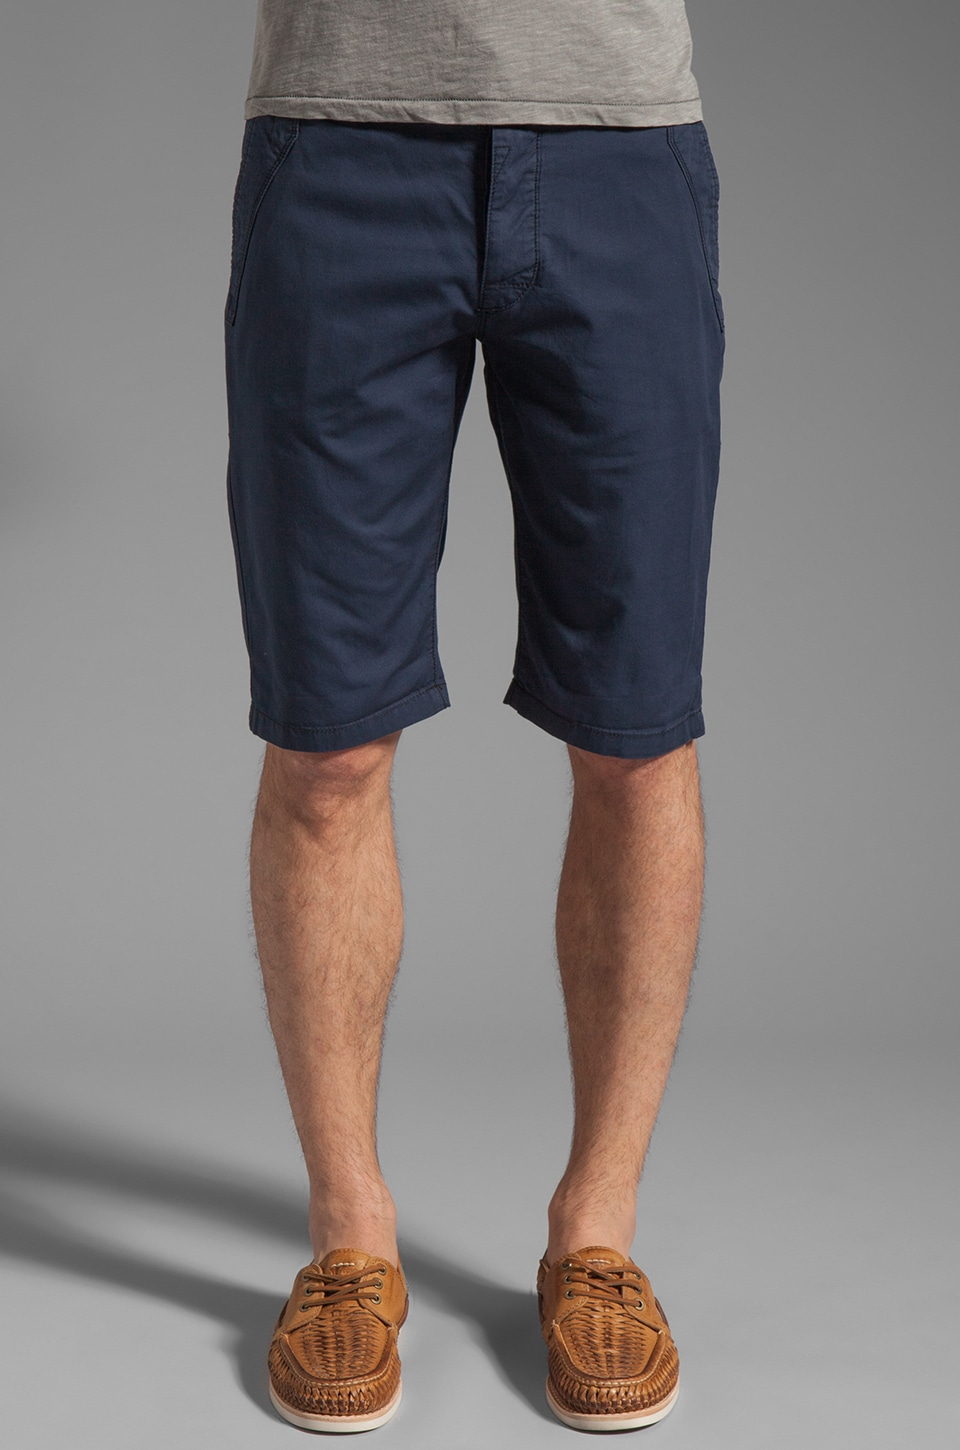 G-Star Western Bronson Chino Straight 1/2 Short in Navy